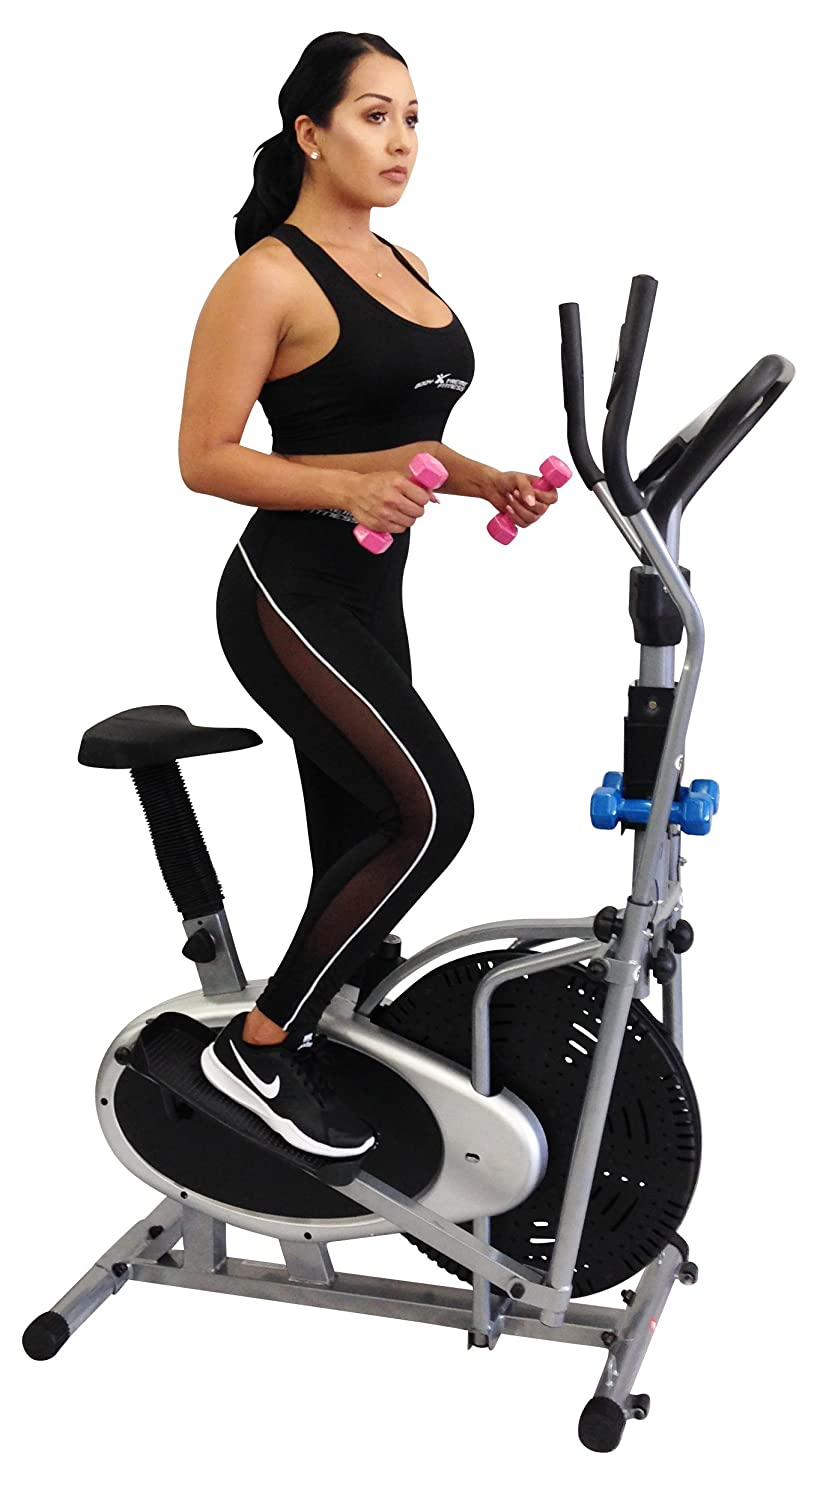 Amazon.com : Body Xtreme Fitness Elliptical 4-in-1 Trainer Exercise Bike BXF001A, Home Gym Equipment, Compact Design, Hand weights, Resistance Bands + BONUS ...